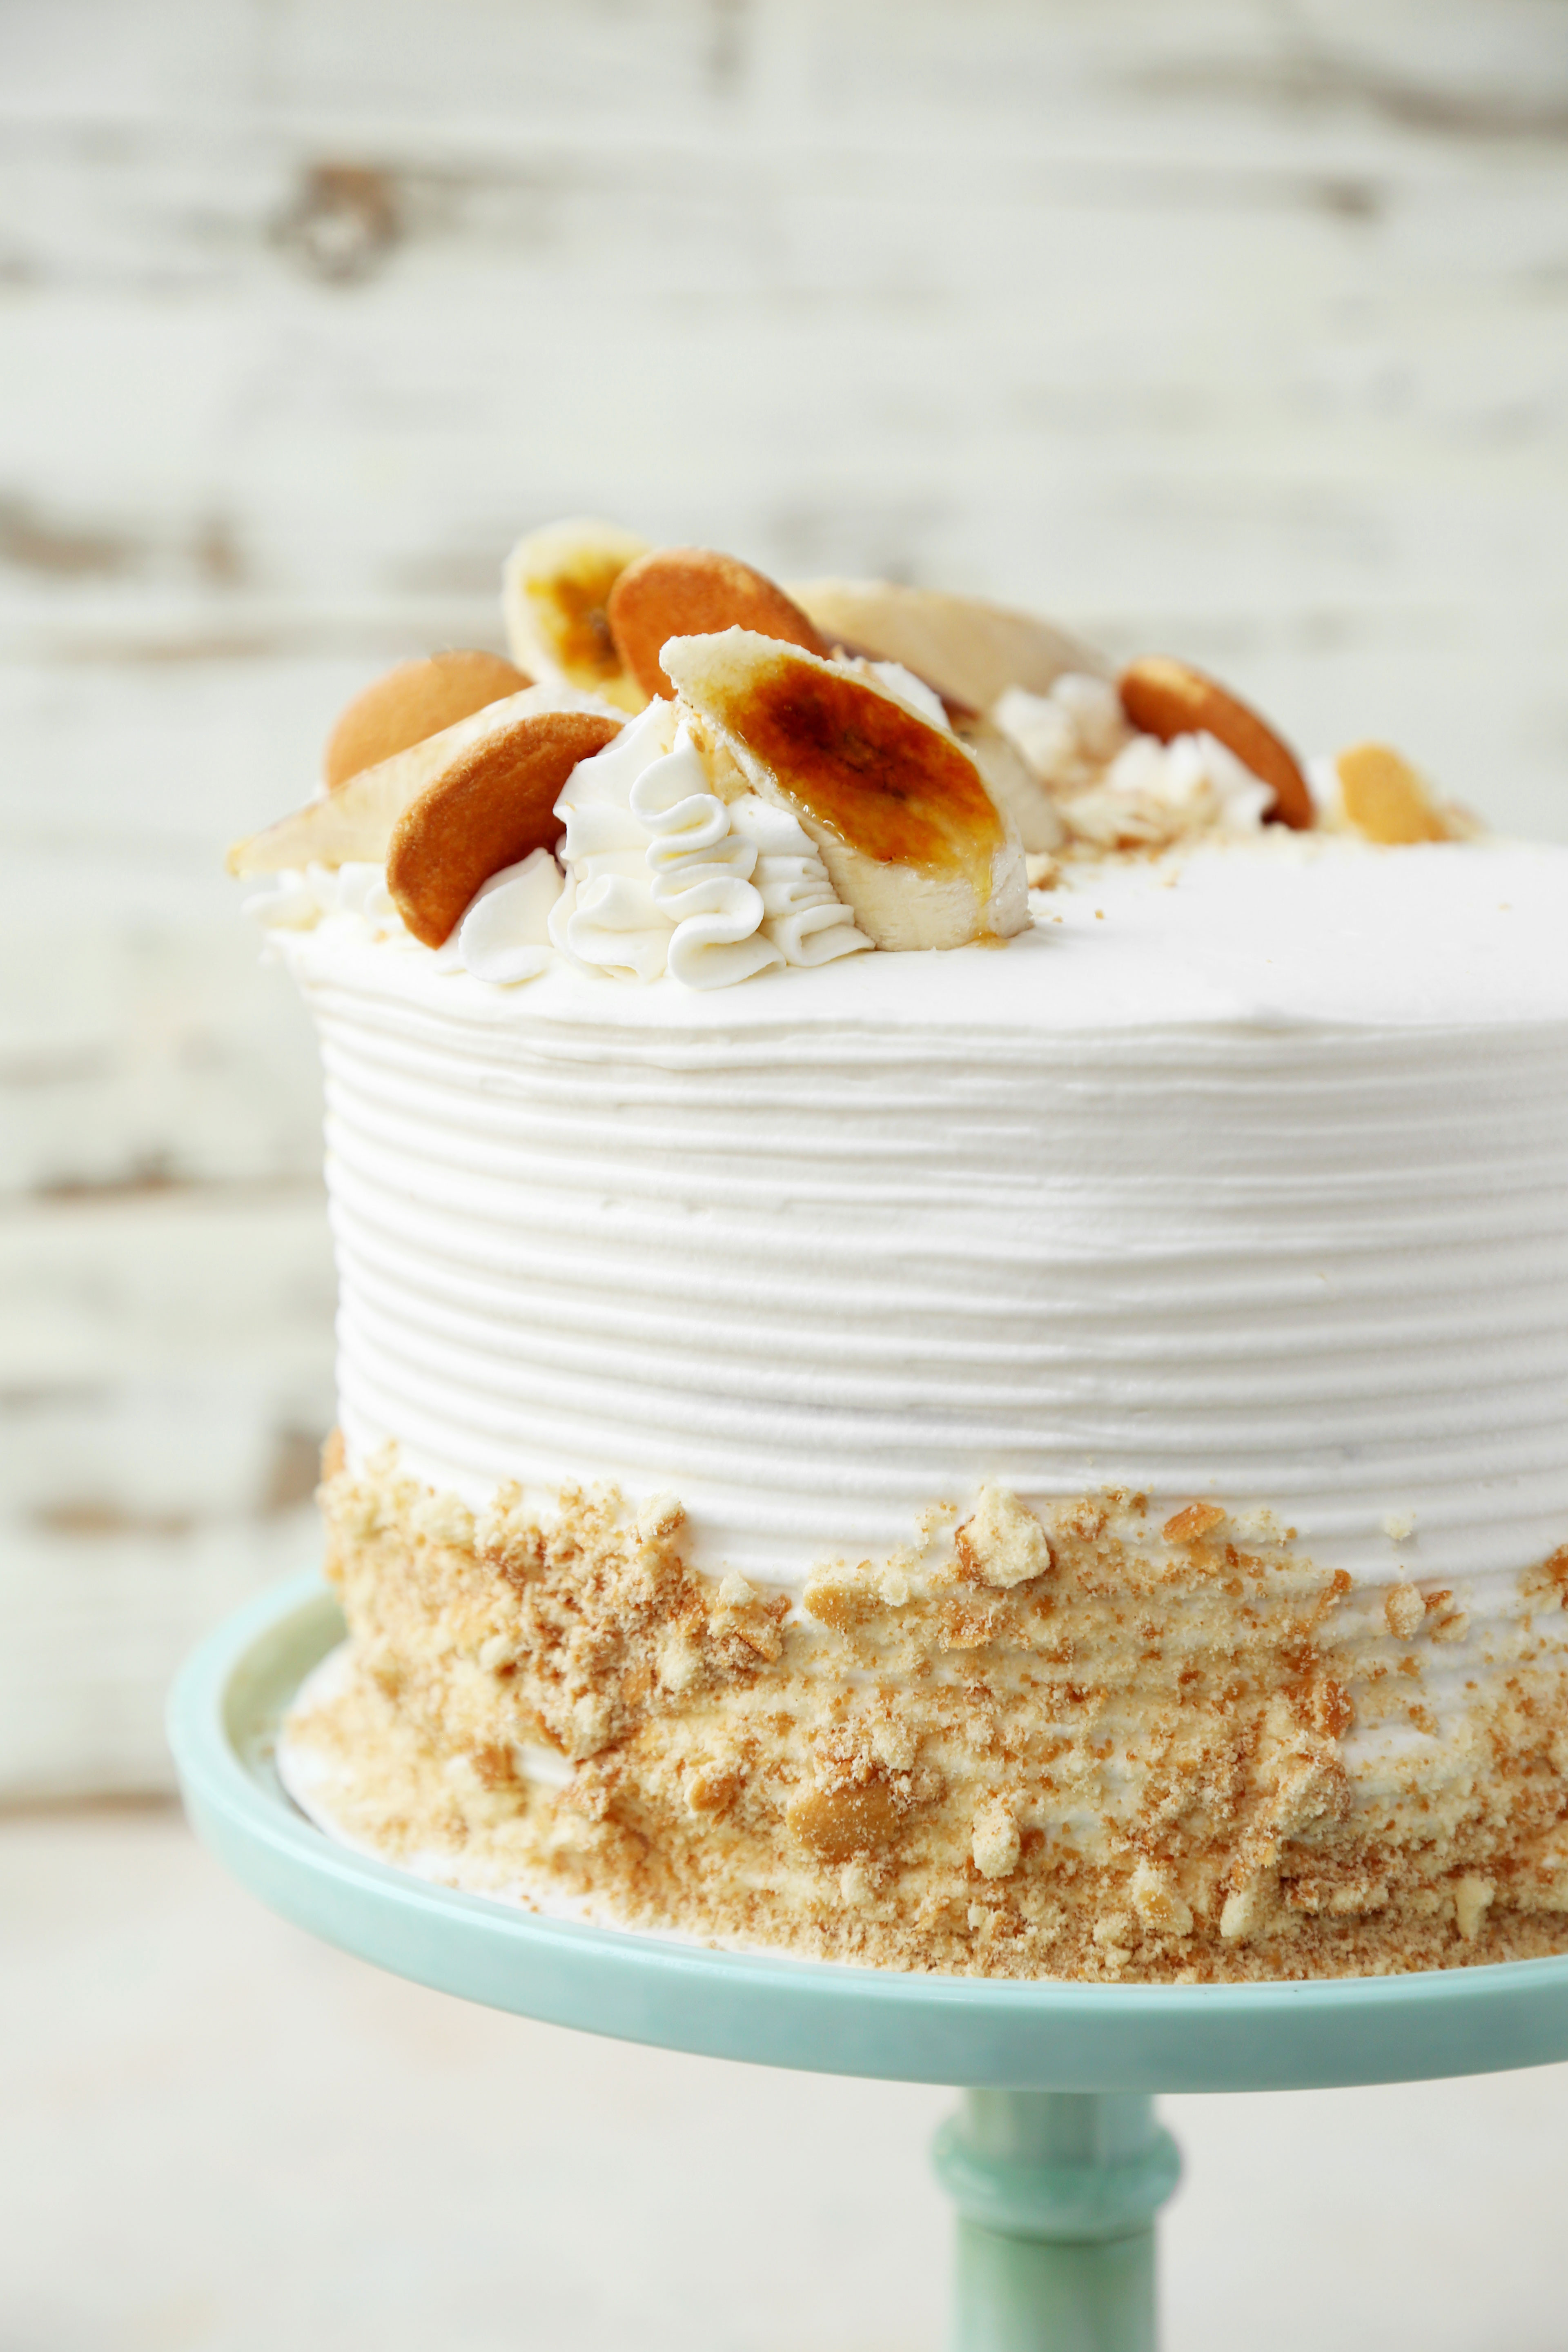 Best ideas about Banana Birthday Cake . Save or Pin Banana Pudding Cake The Candid Appetite Now.